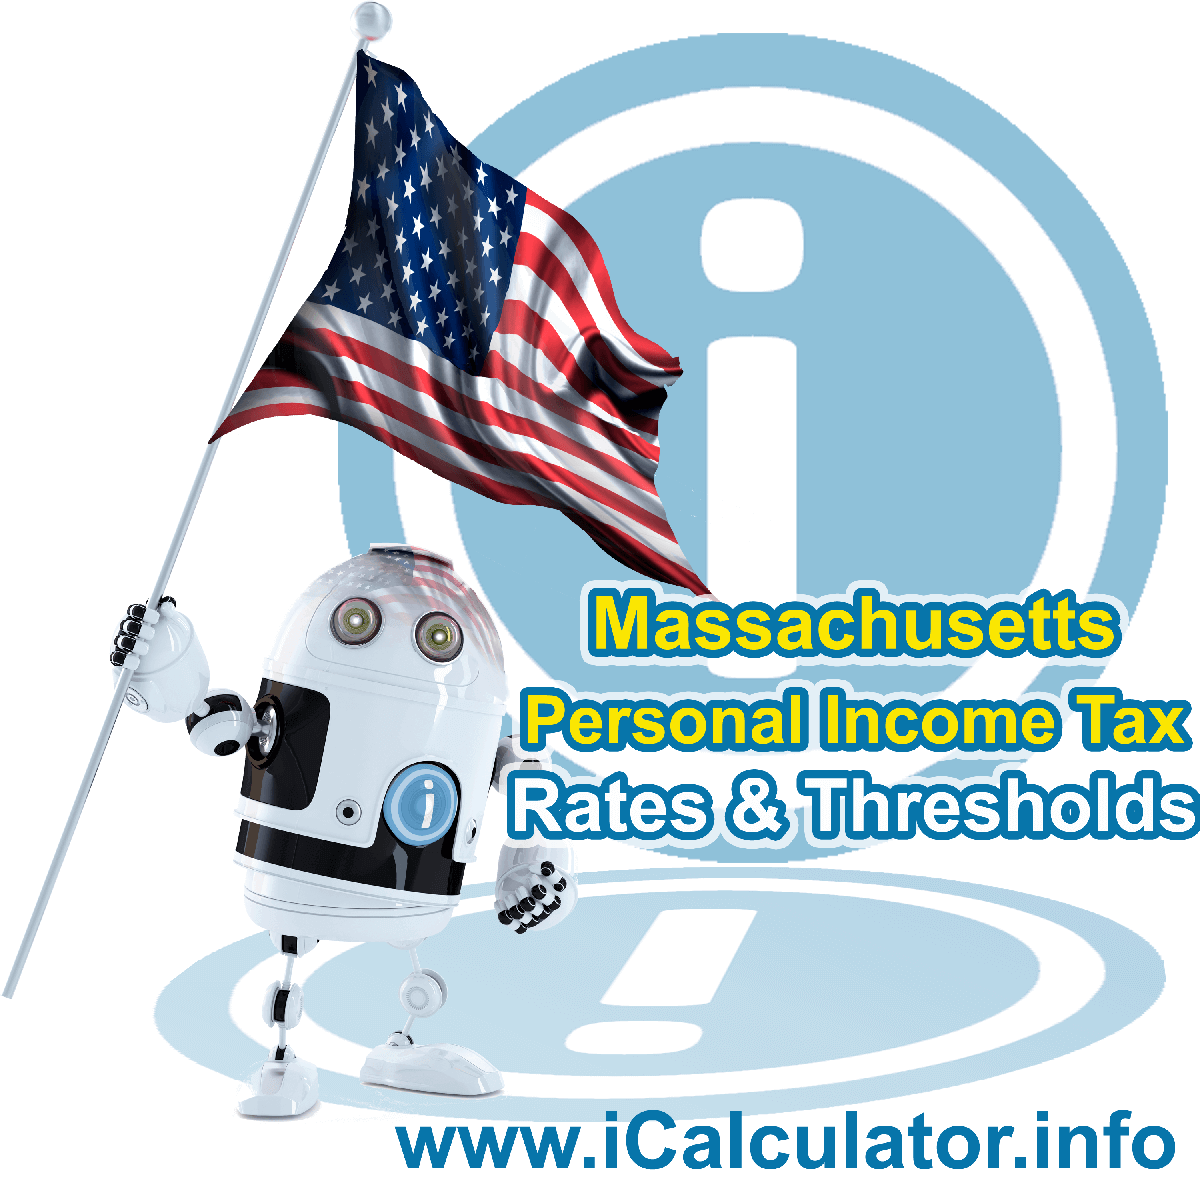 Massachusetts State Tax Tables 2017. This image displays details of the Massachusetts State Tax Tables for the 2017 tax return year which is provided in support of the 2017 US Tax Calculator